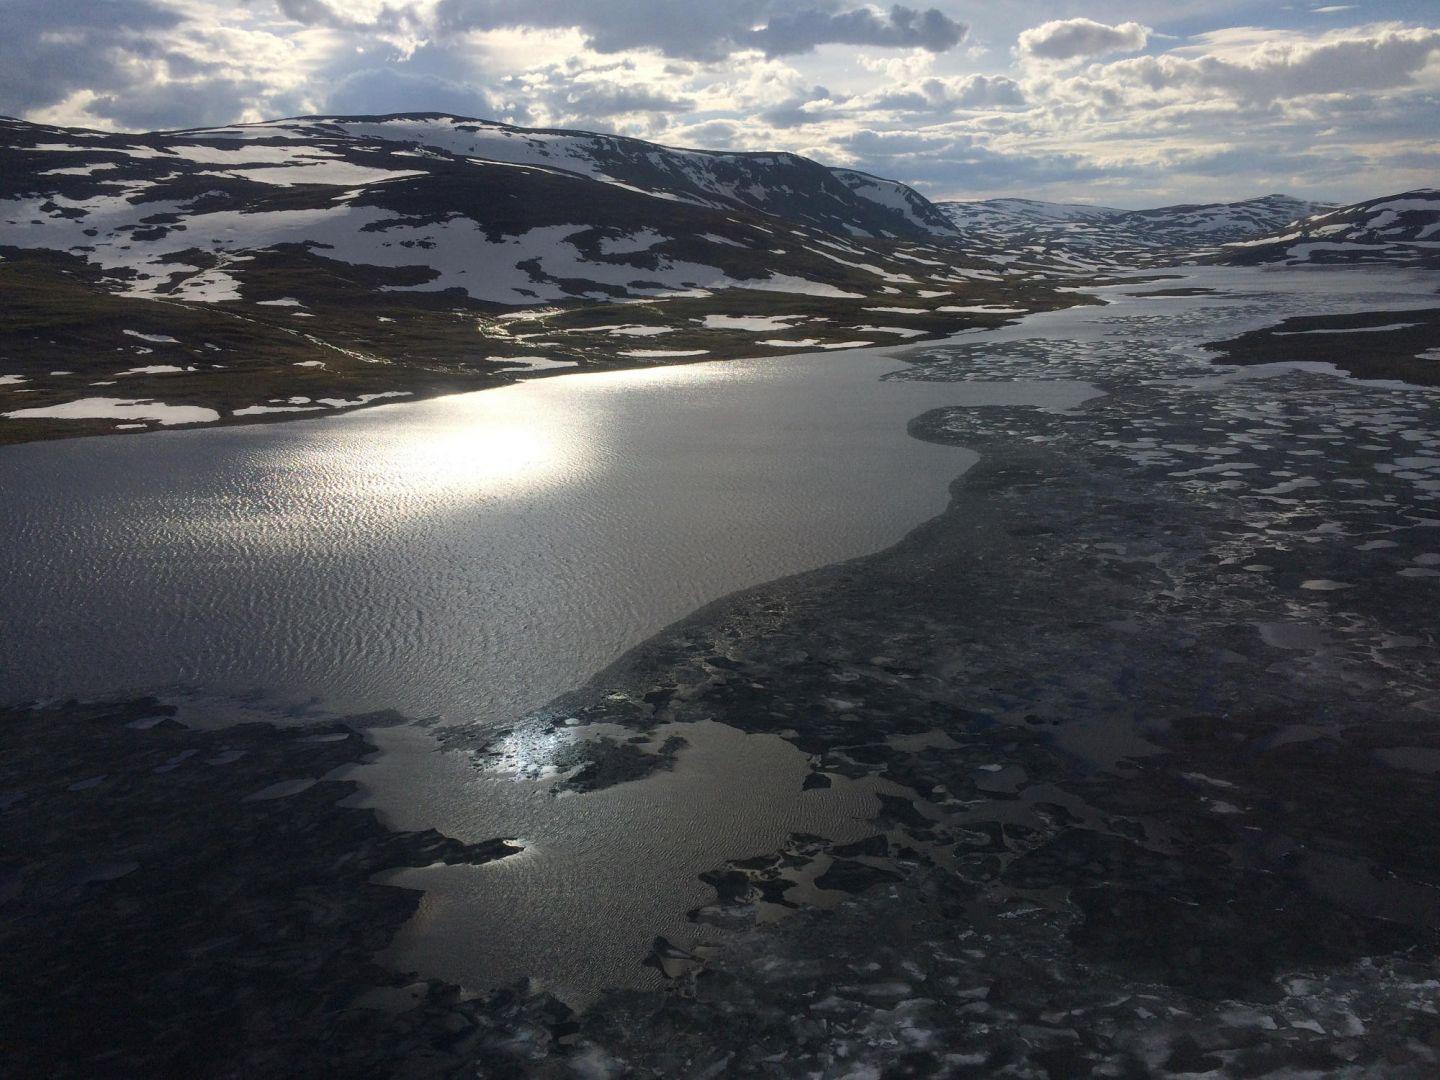 Lake Kilpisjärvi in Enontekiö by air